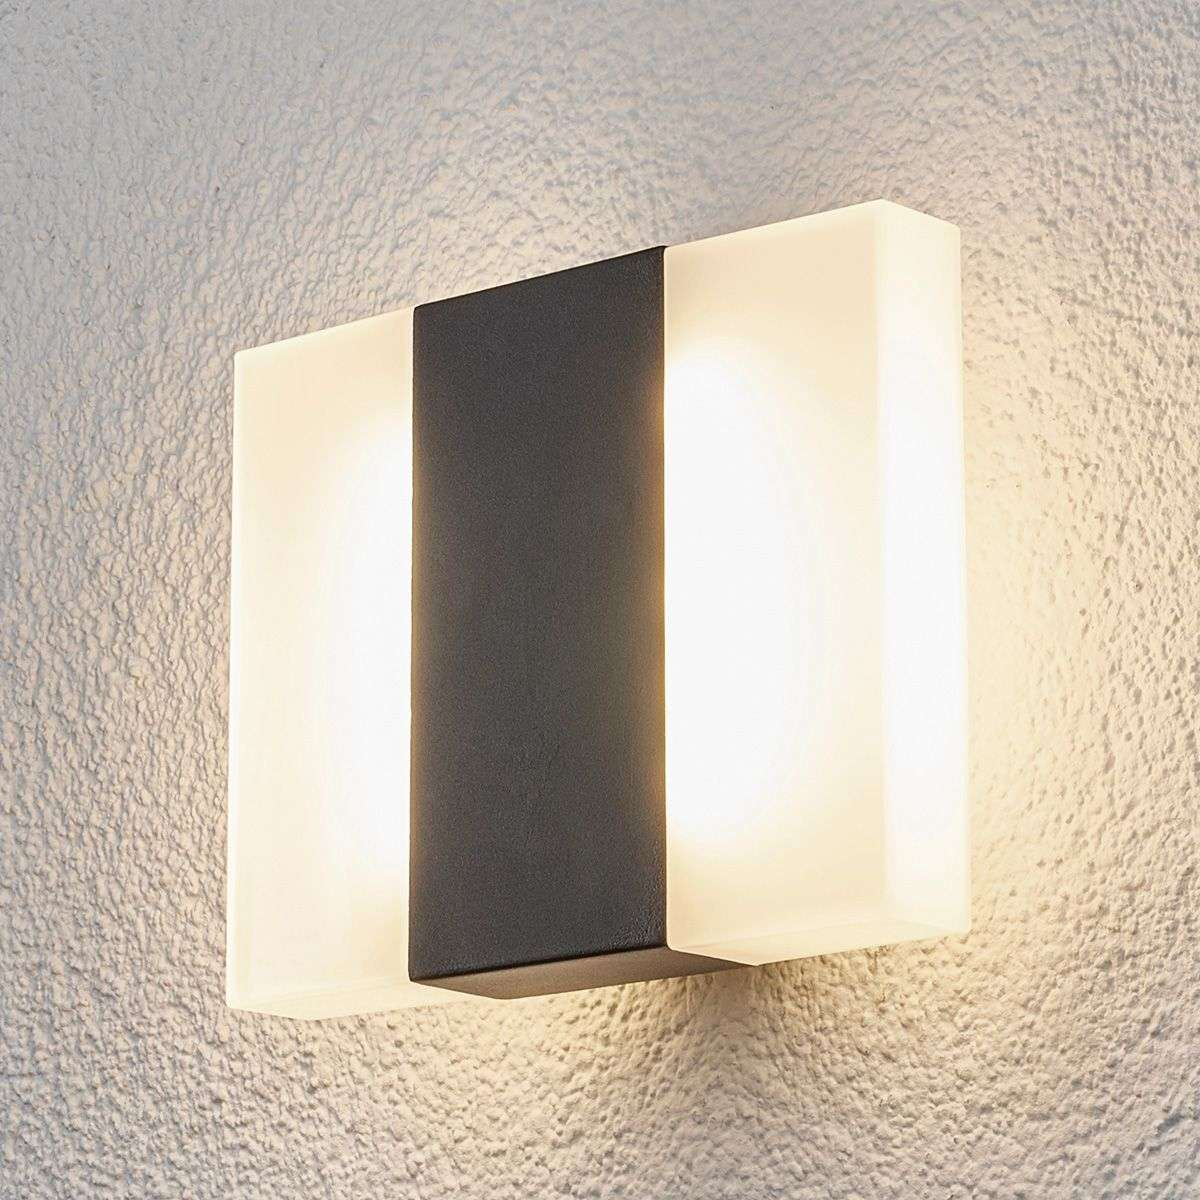 Brje led outdoor wall light in a square shape lights aloadofball Image collections